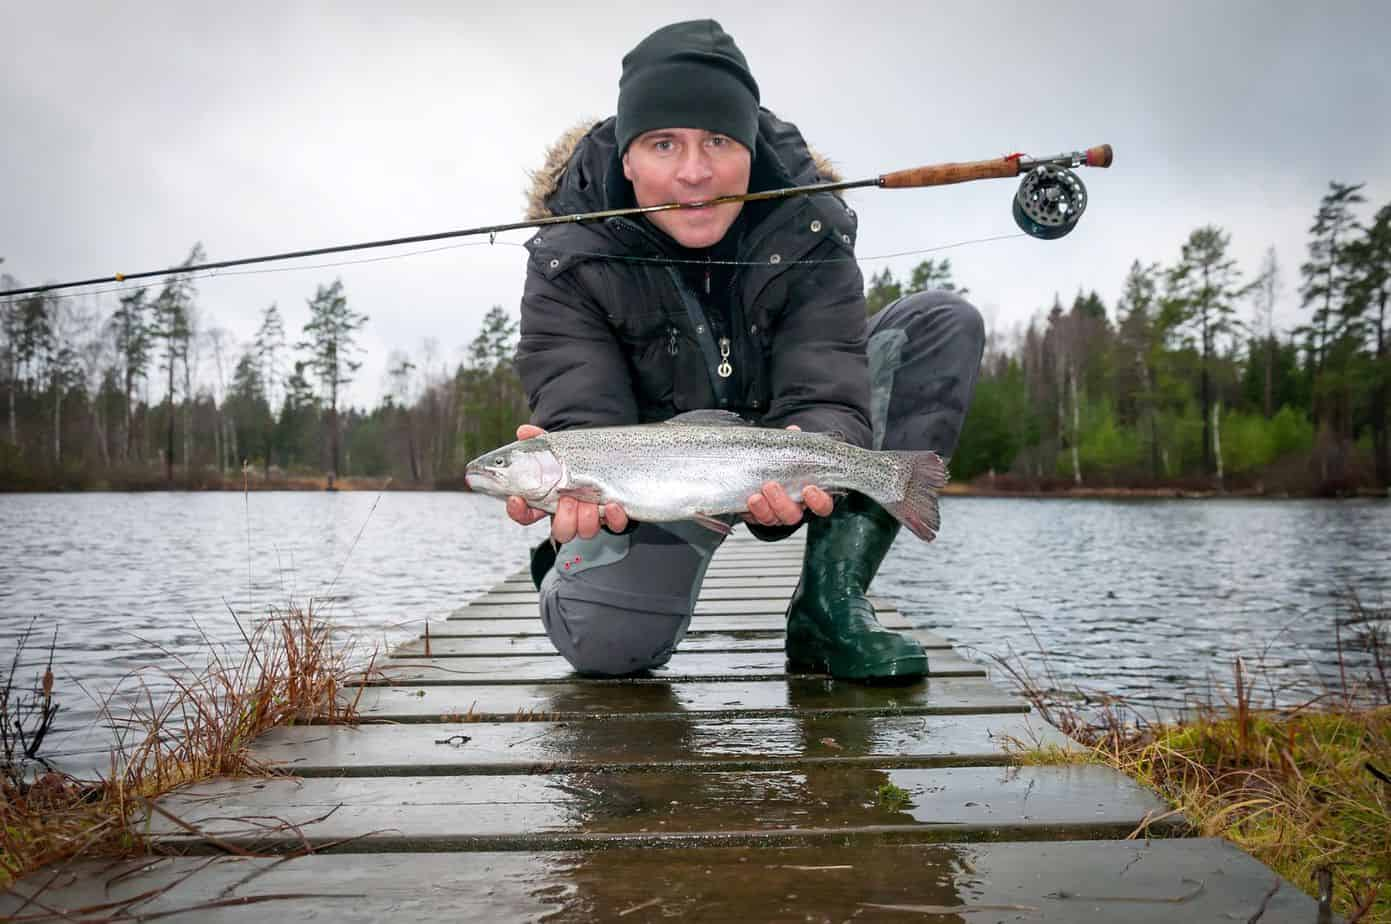 What's The Difference Between Steelhead And Rainbow Trout?